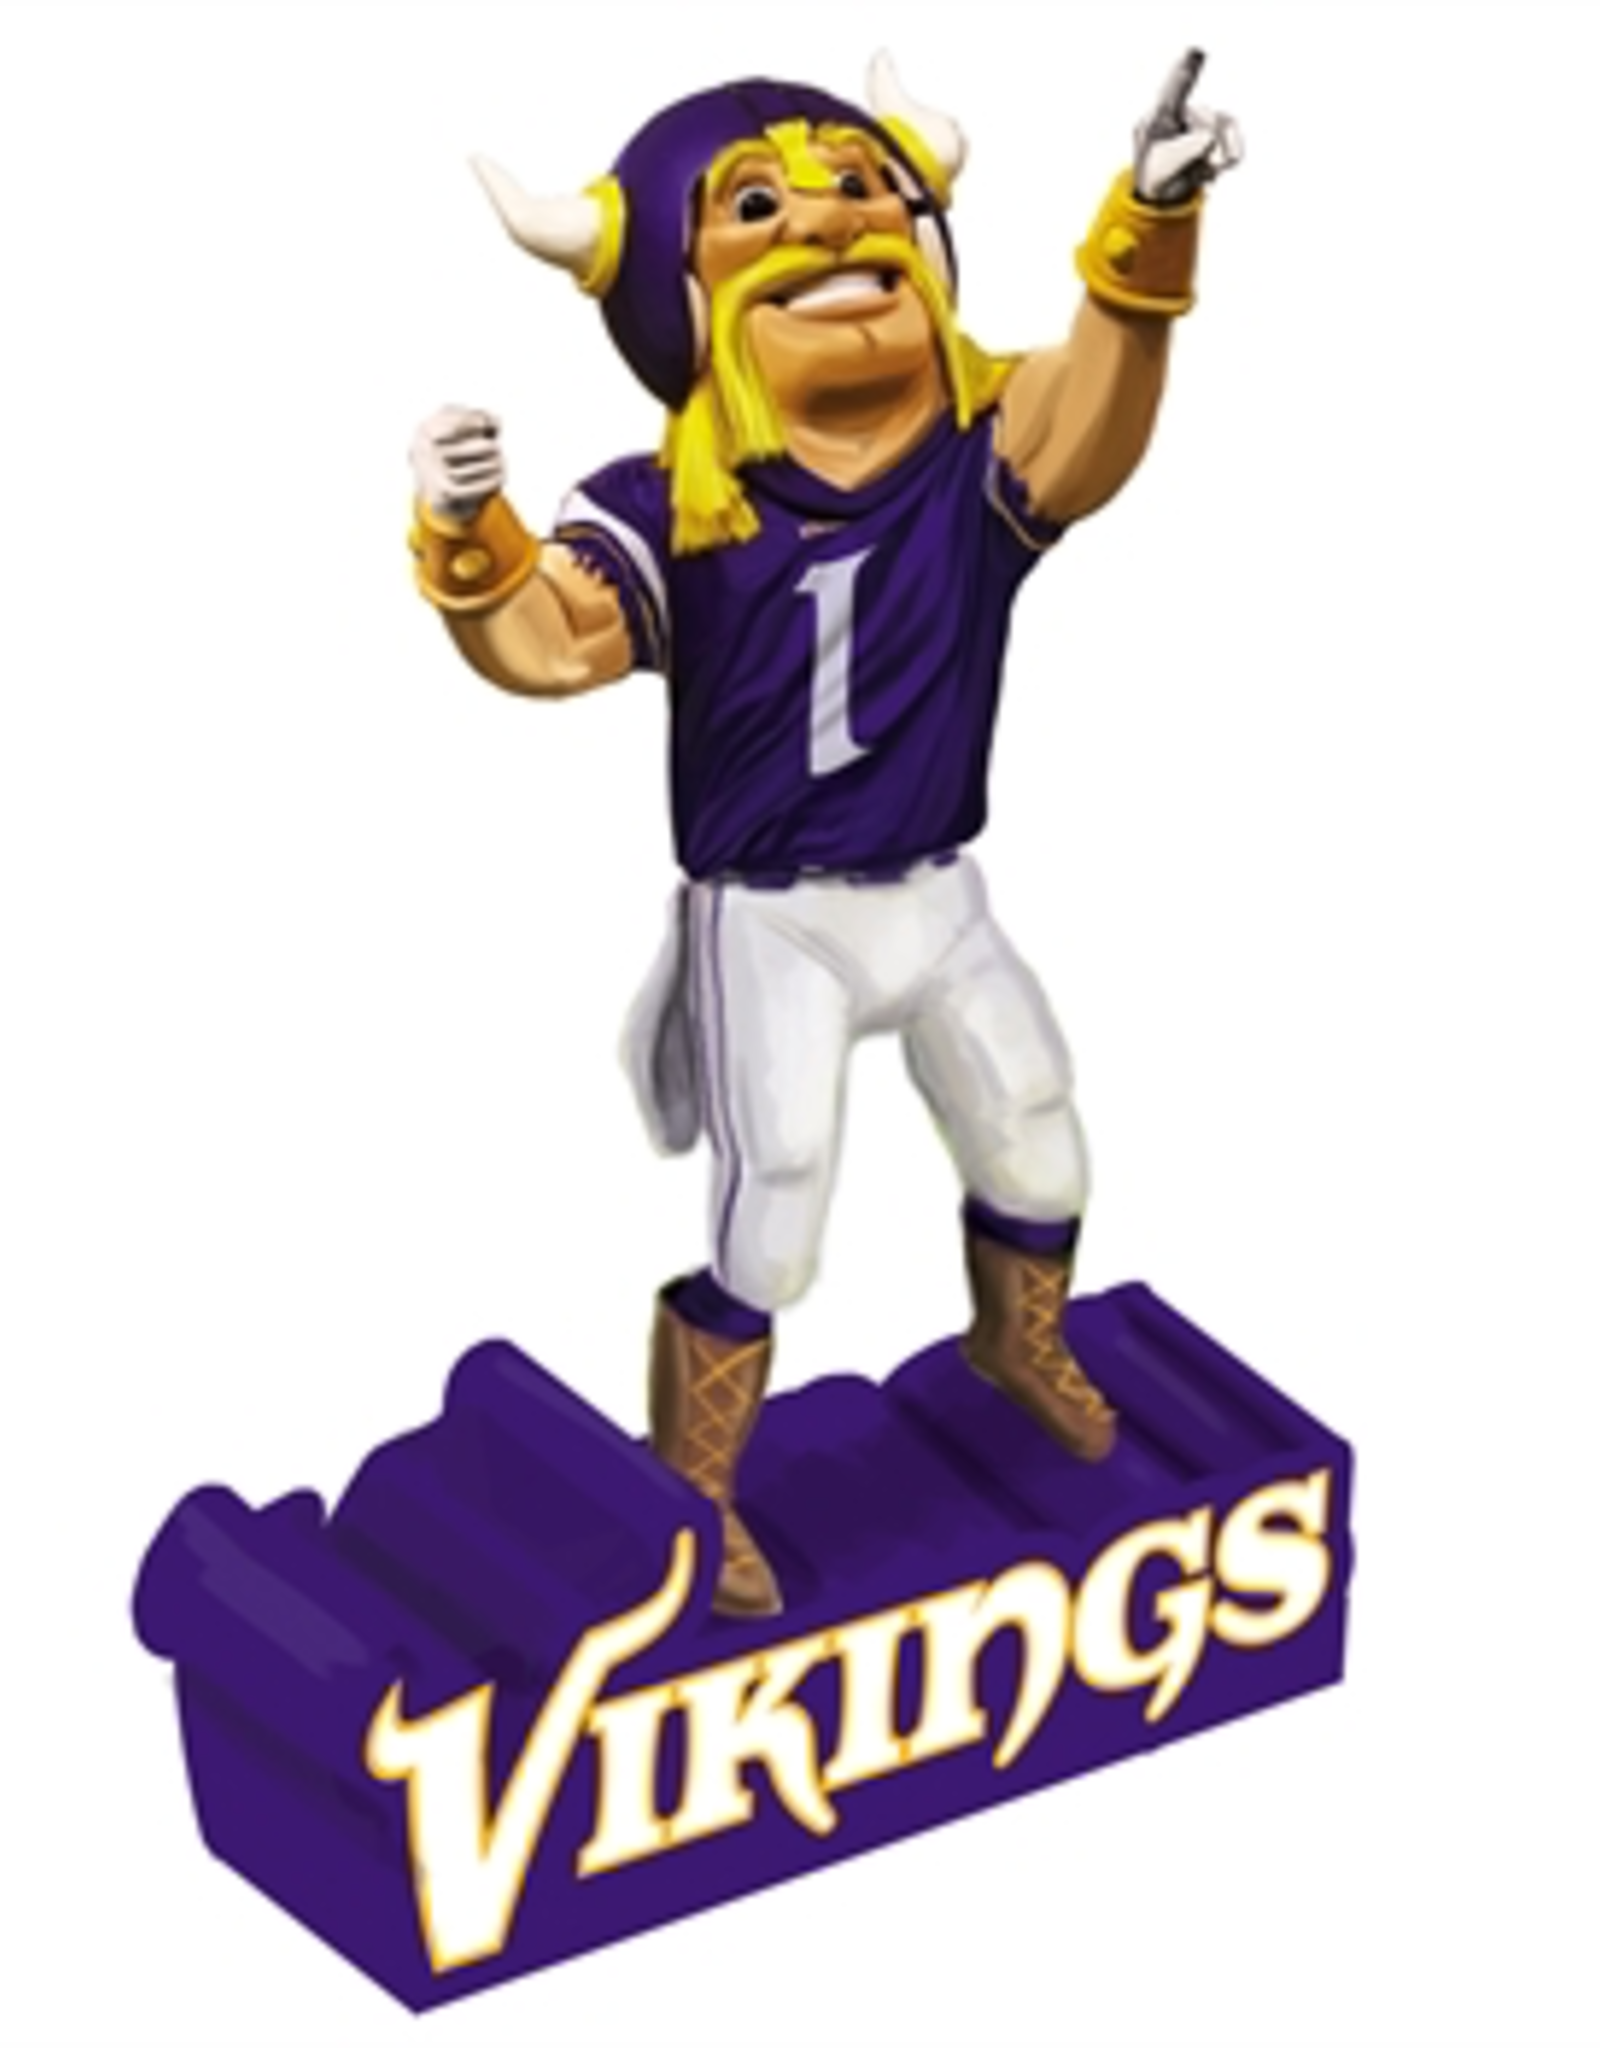 EVERGREEN Minnesota Vikings Mascot Statue